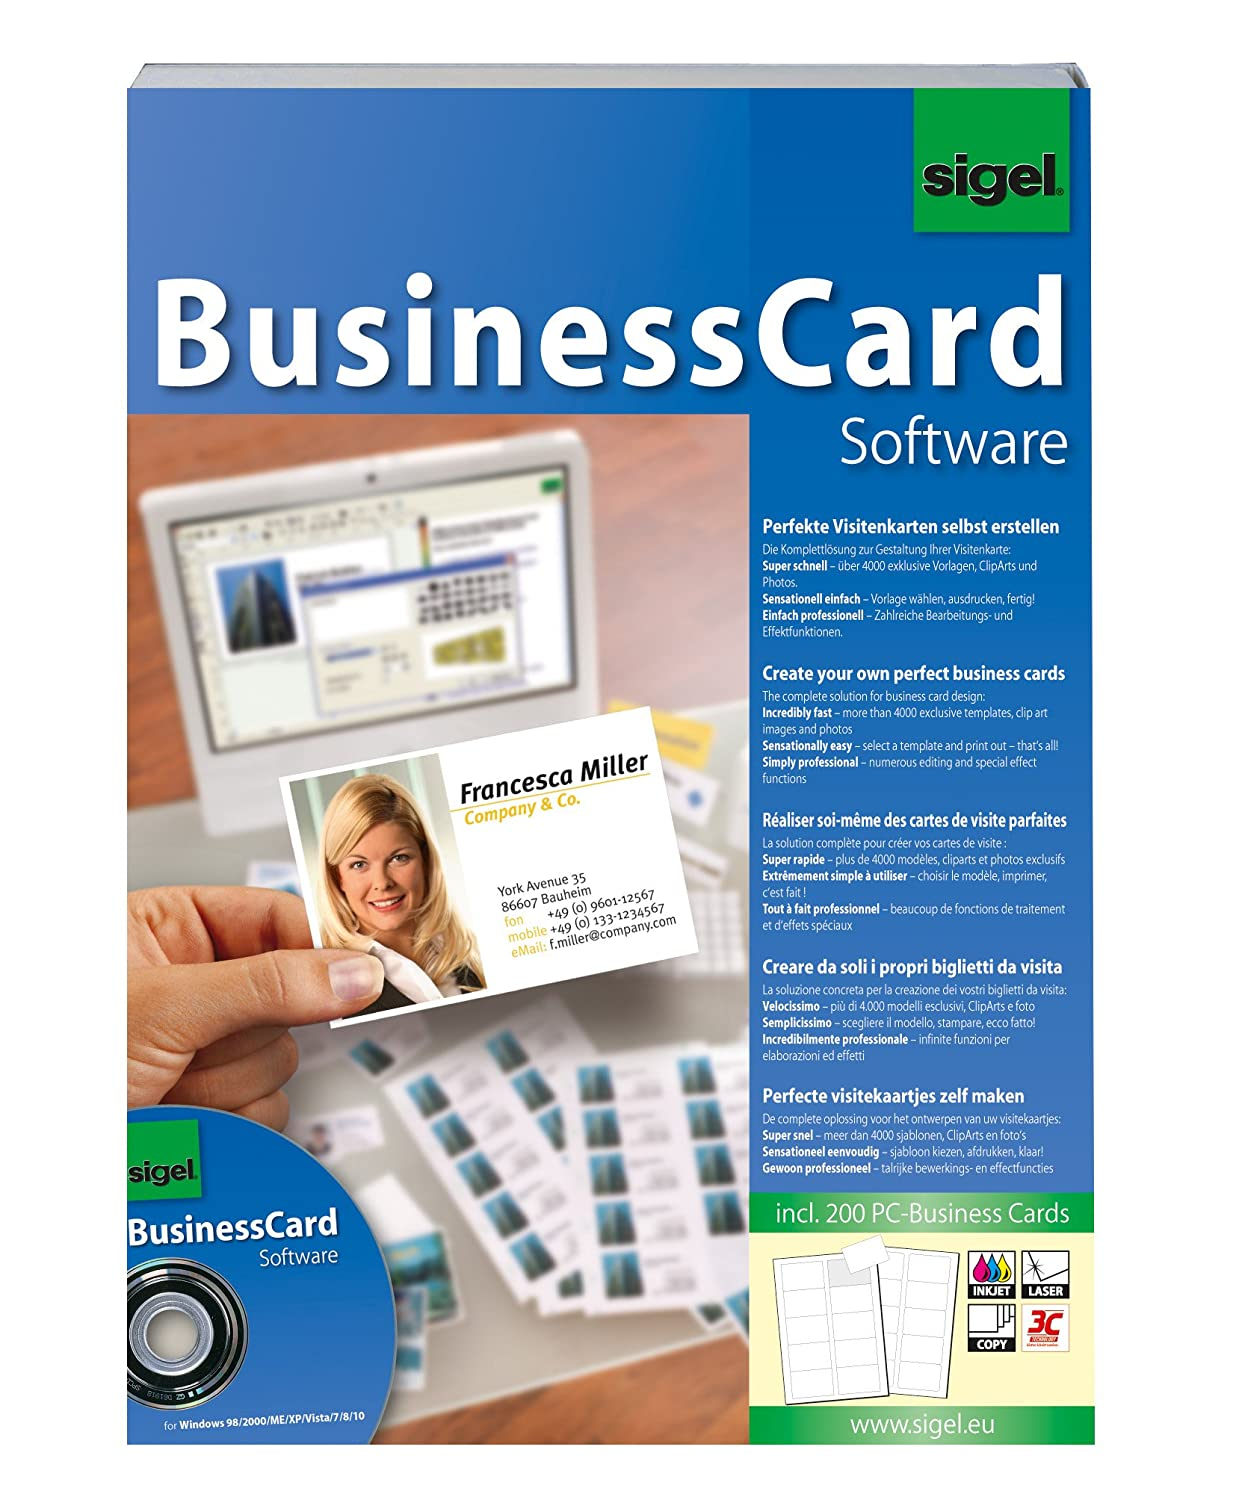 Sigel sw670 business card software incl 200 business cards amazon sigel sw670 business card software incl 200 business cards amazon office products reheart Images